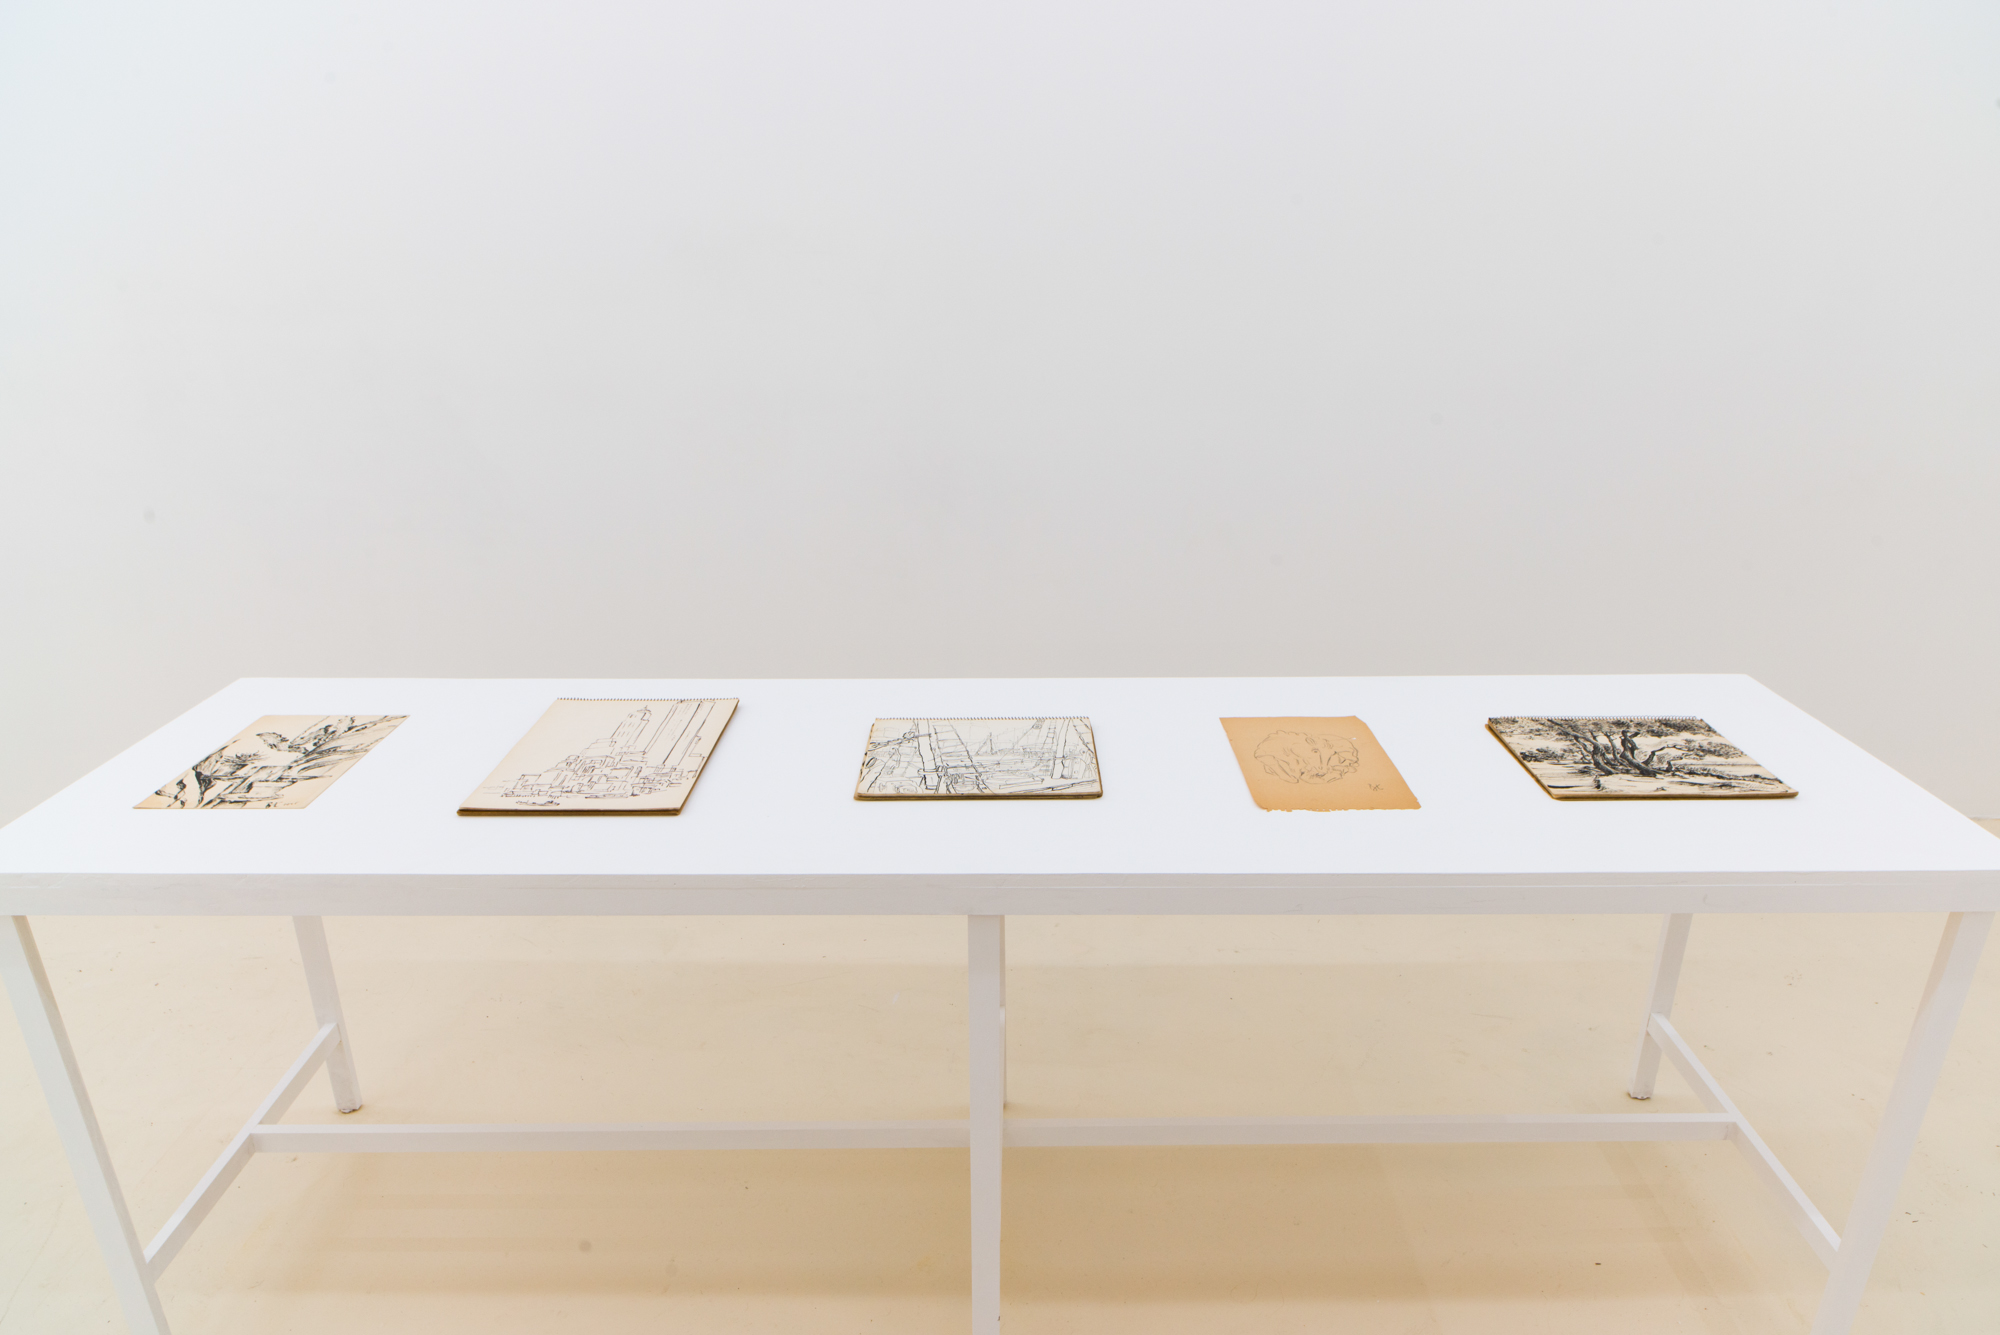 Place/Image/Object , Fred Terna, Untitled Notebooks, c. 1945-1952, Ink on Paper, Courtesy Jack Barrett, New York, 2019